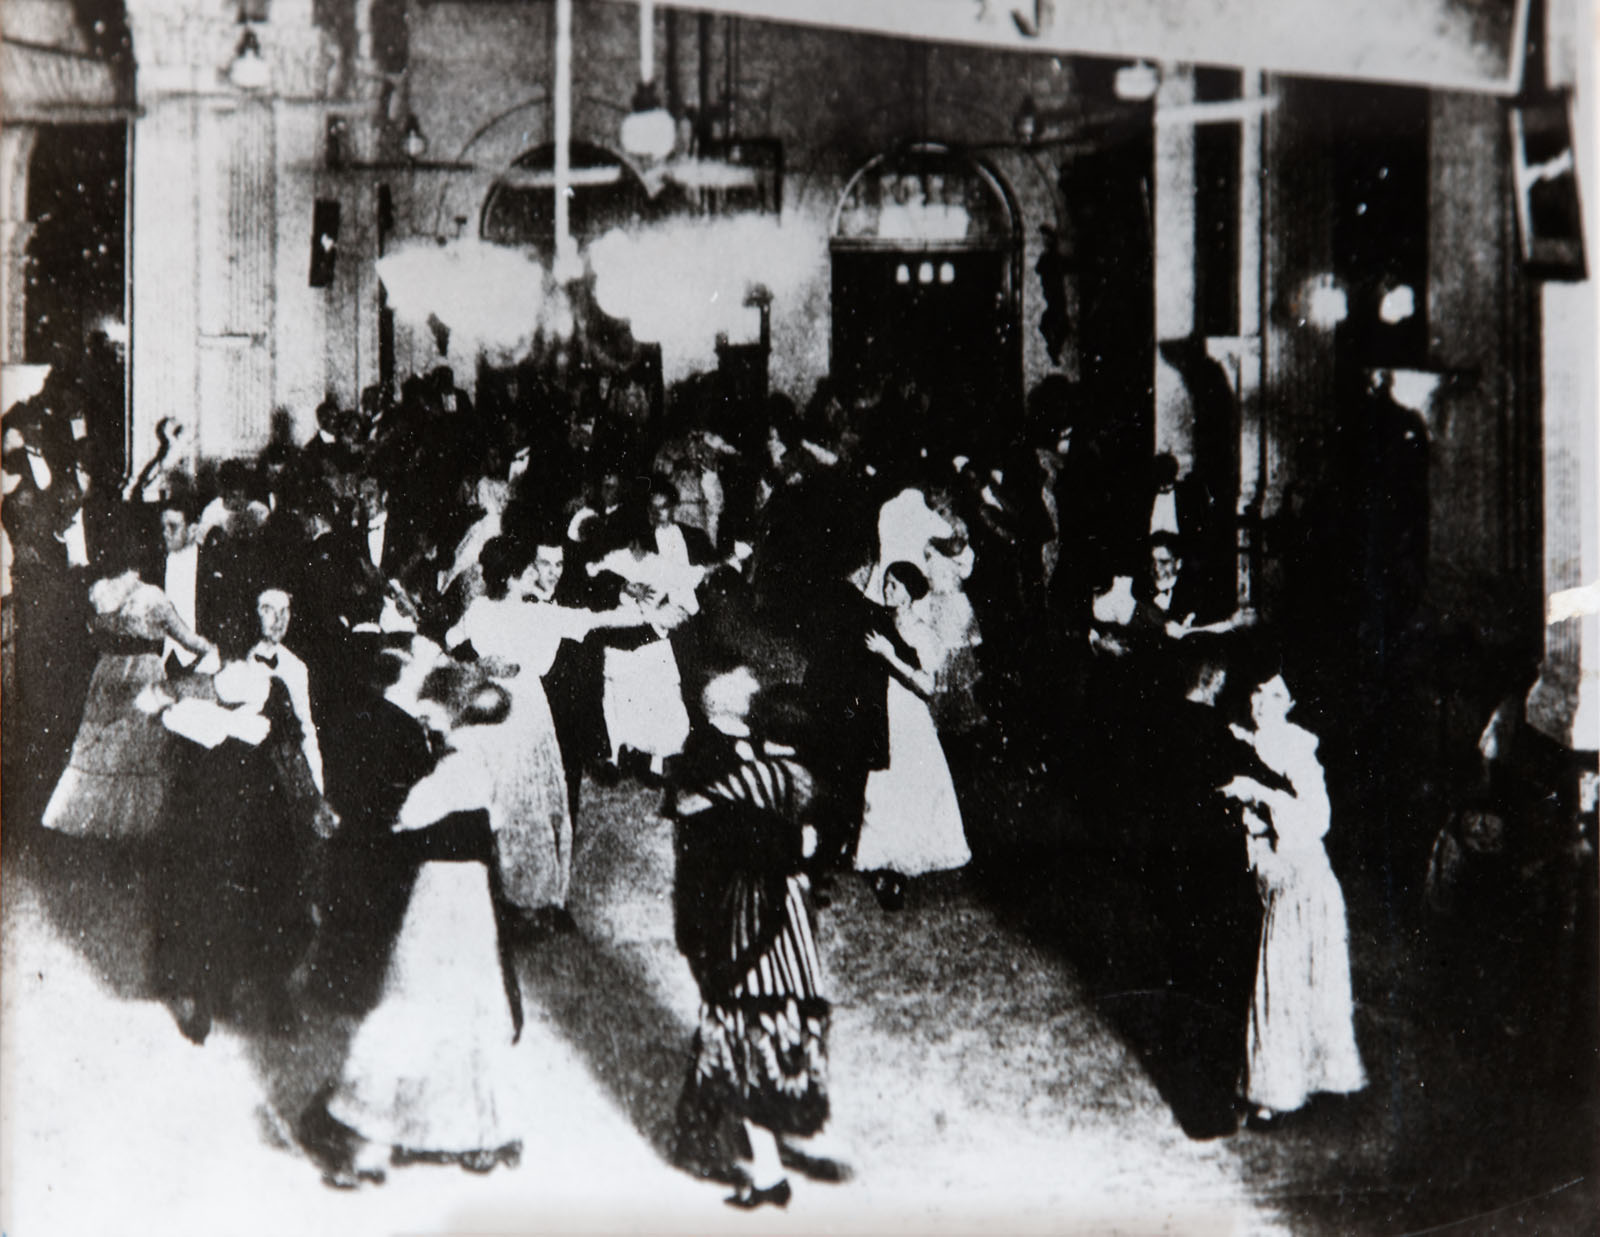 dancing in the hotel's ballroom in 1905